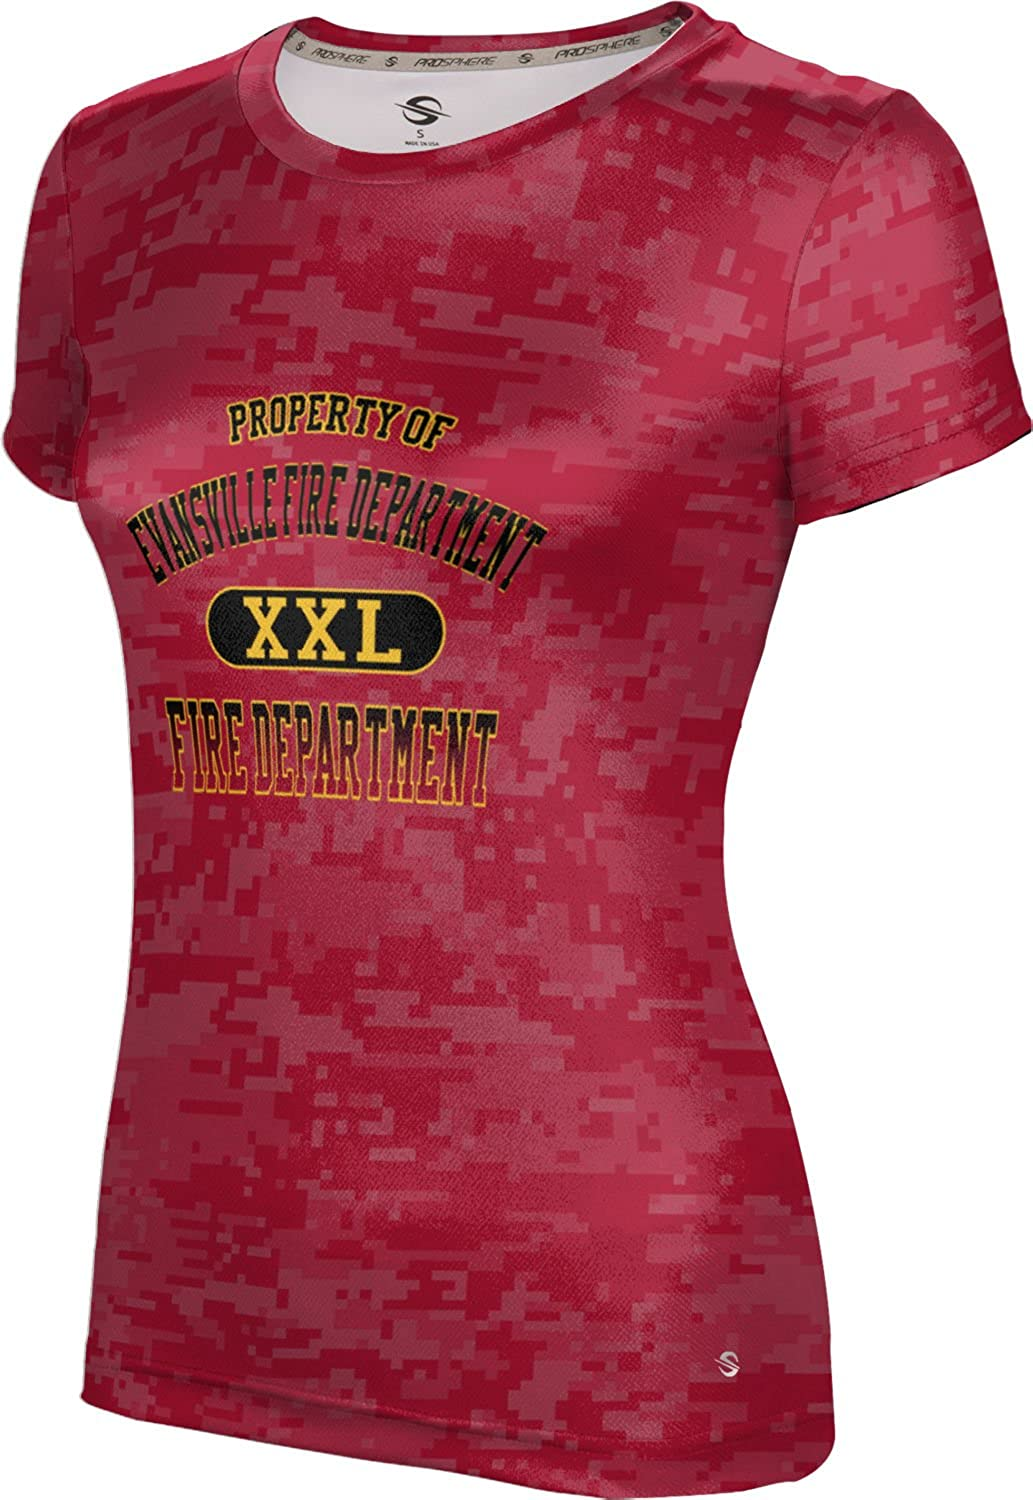 ProSphere Women's Evansville Fire Department Gov-Fire-Police Digital Tech Tee